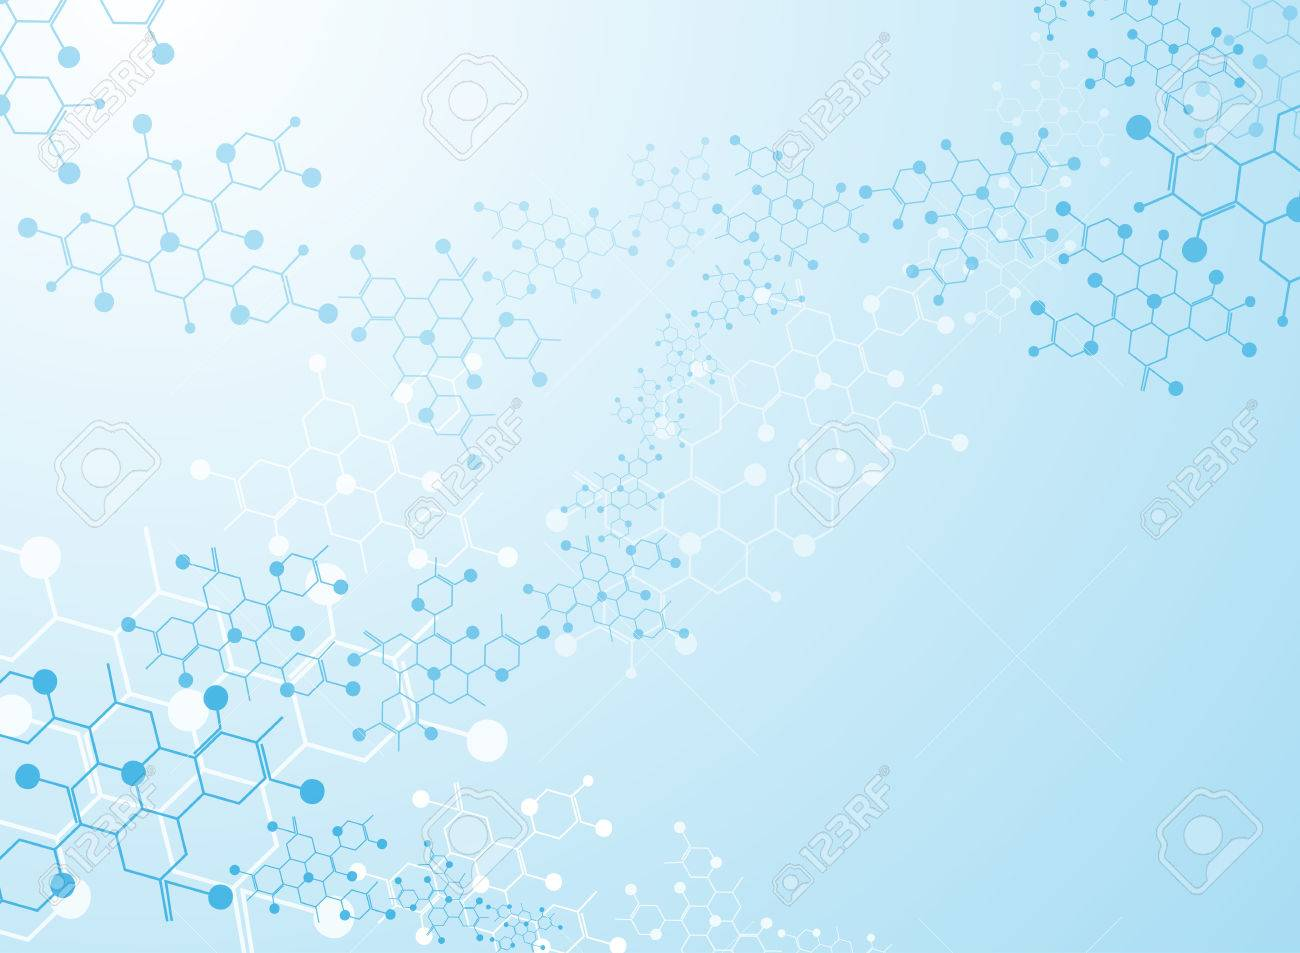 Abstract background medical substance and molecules. - 37128814